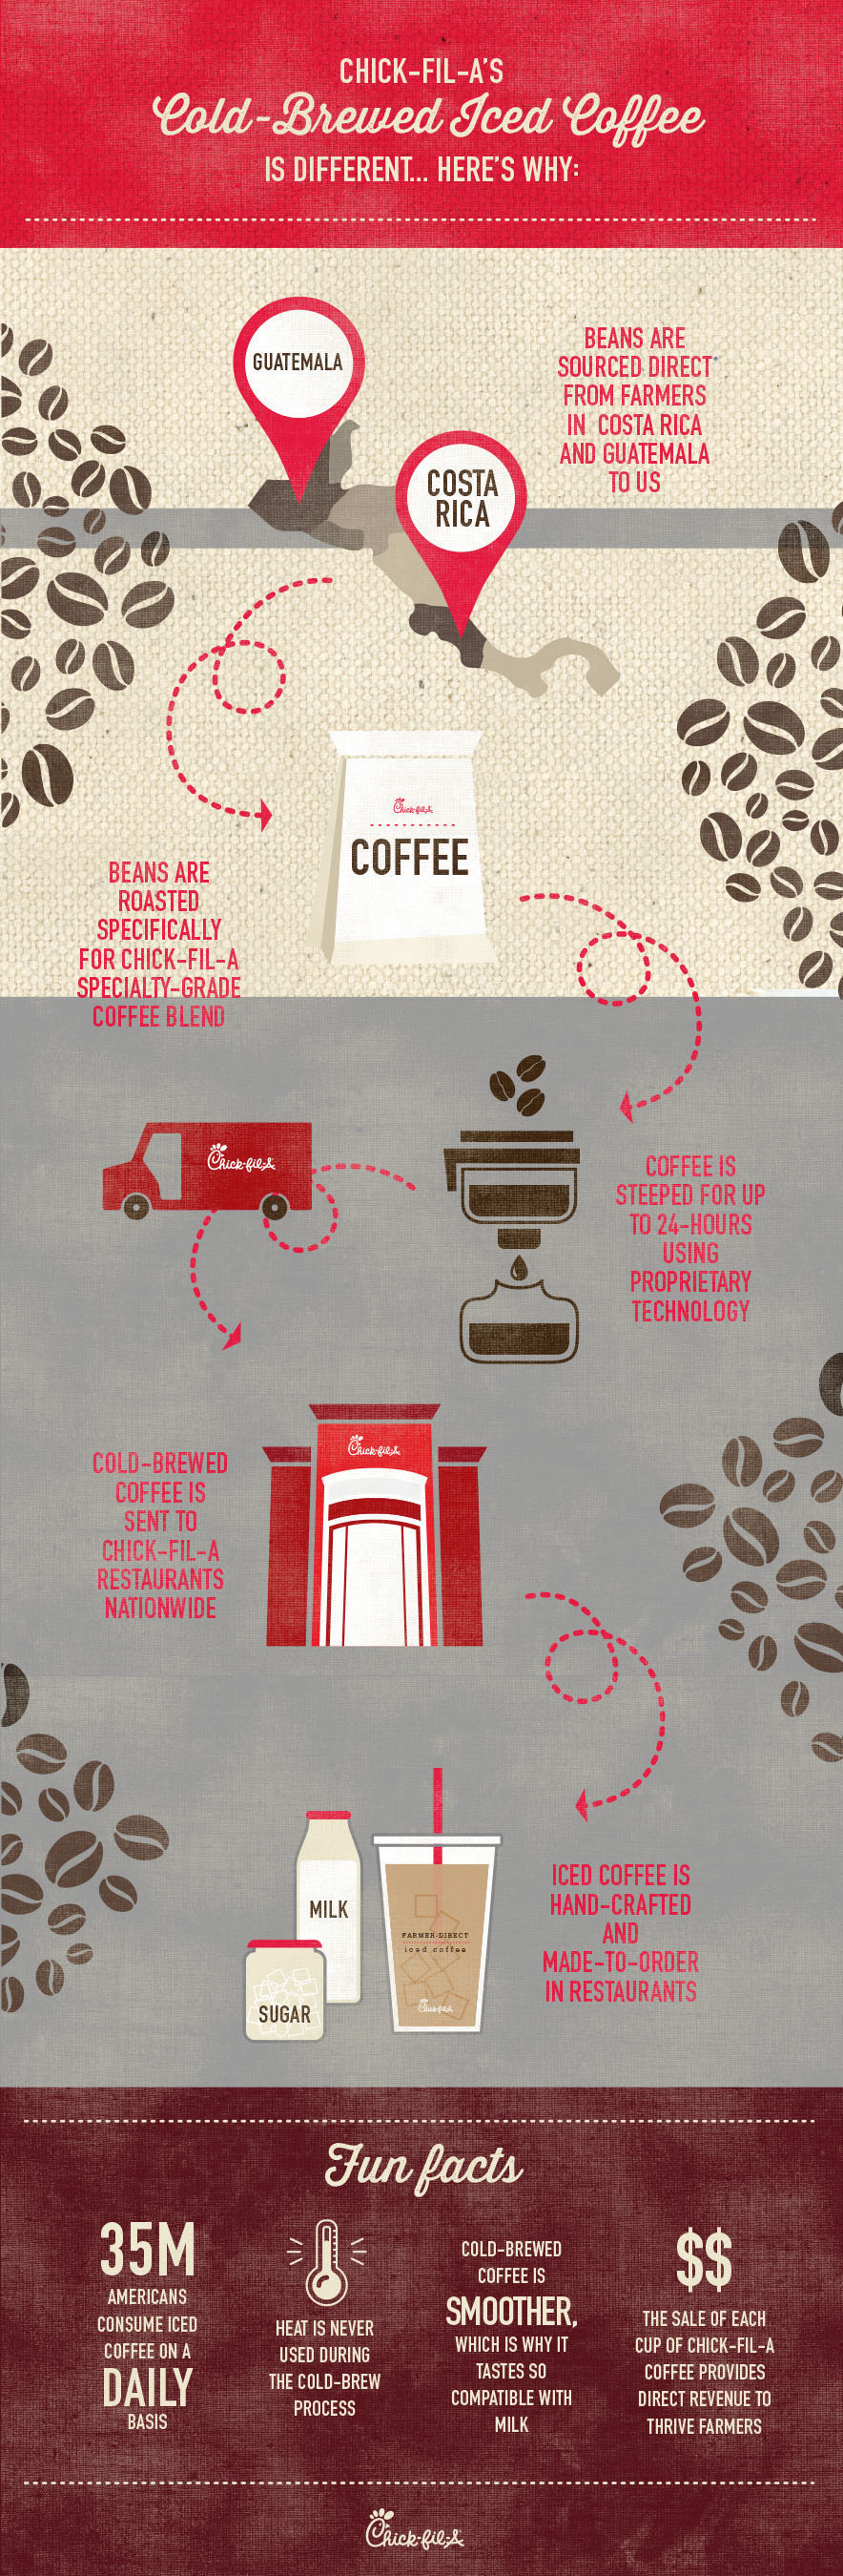 Chick-fil-A's Cold-brewed Iced Coffee Process